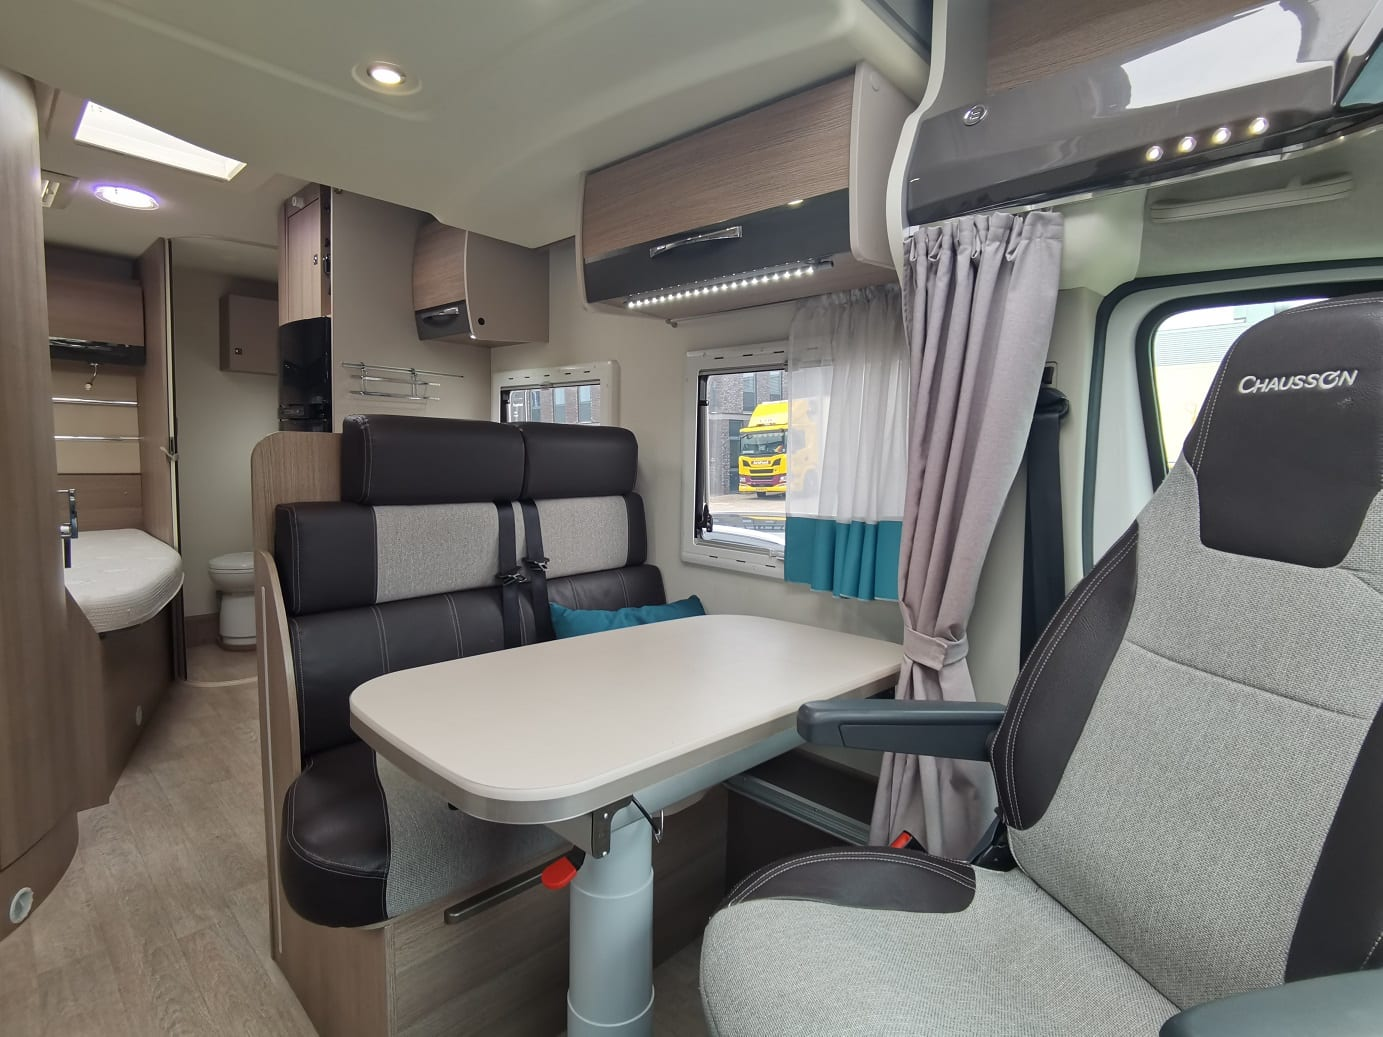 Chausson Flash 625 Fransbed